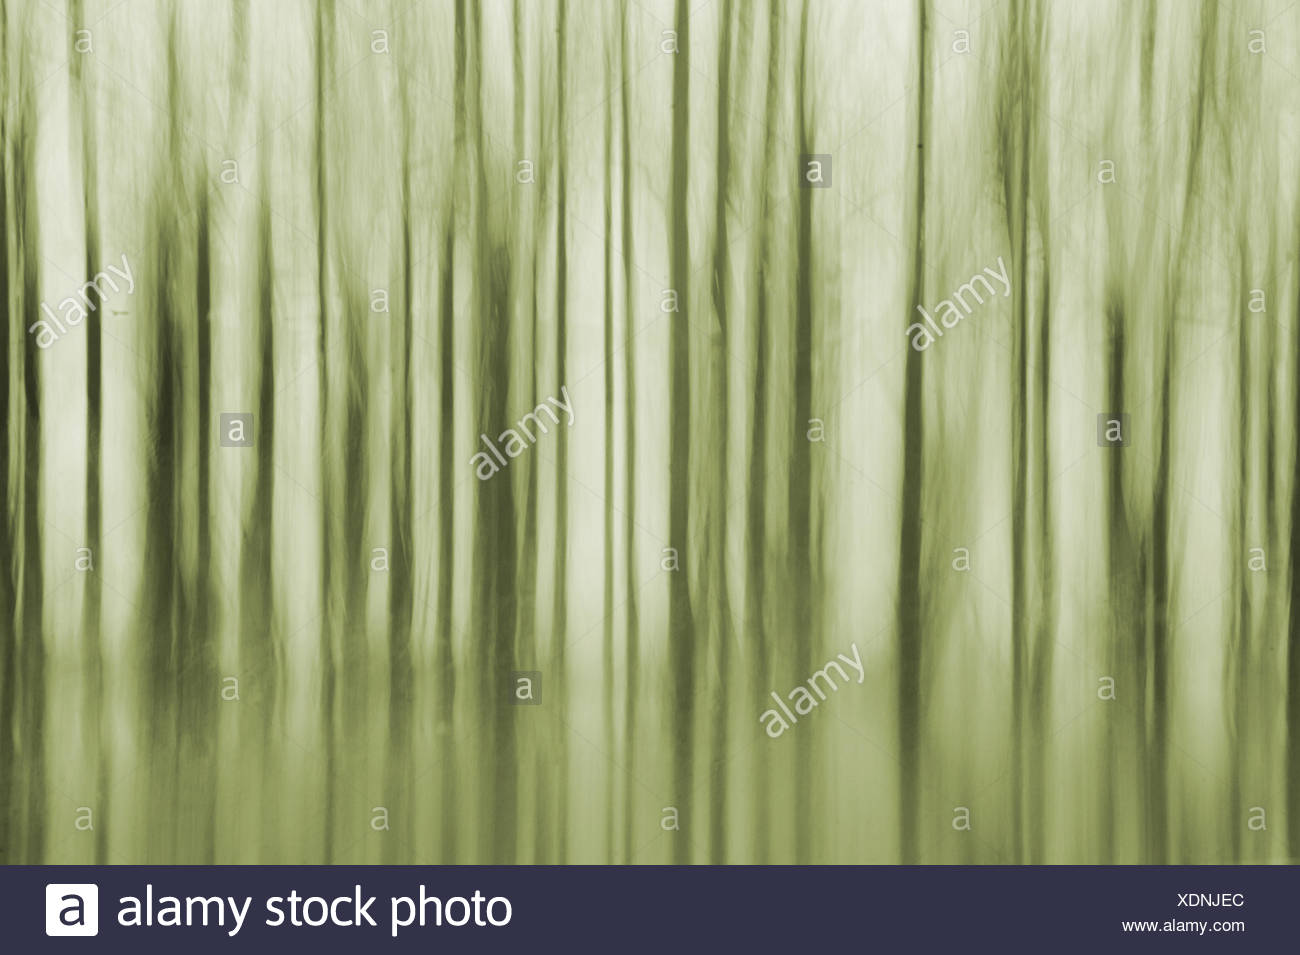 Trees abstract - Stock Image